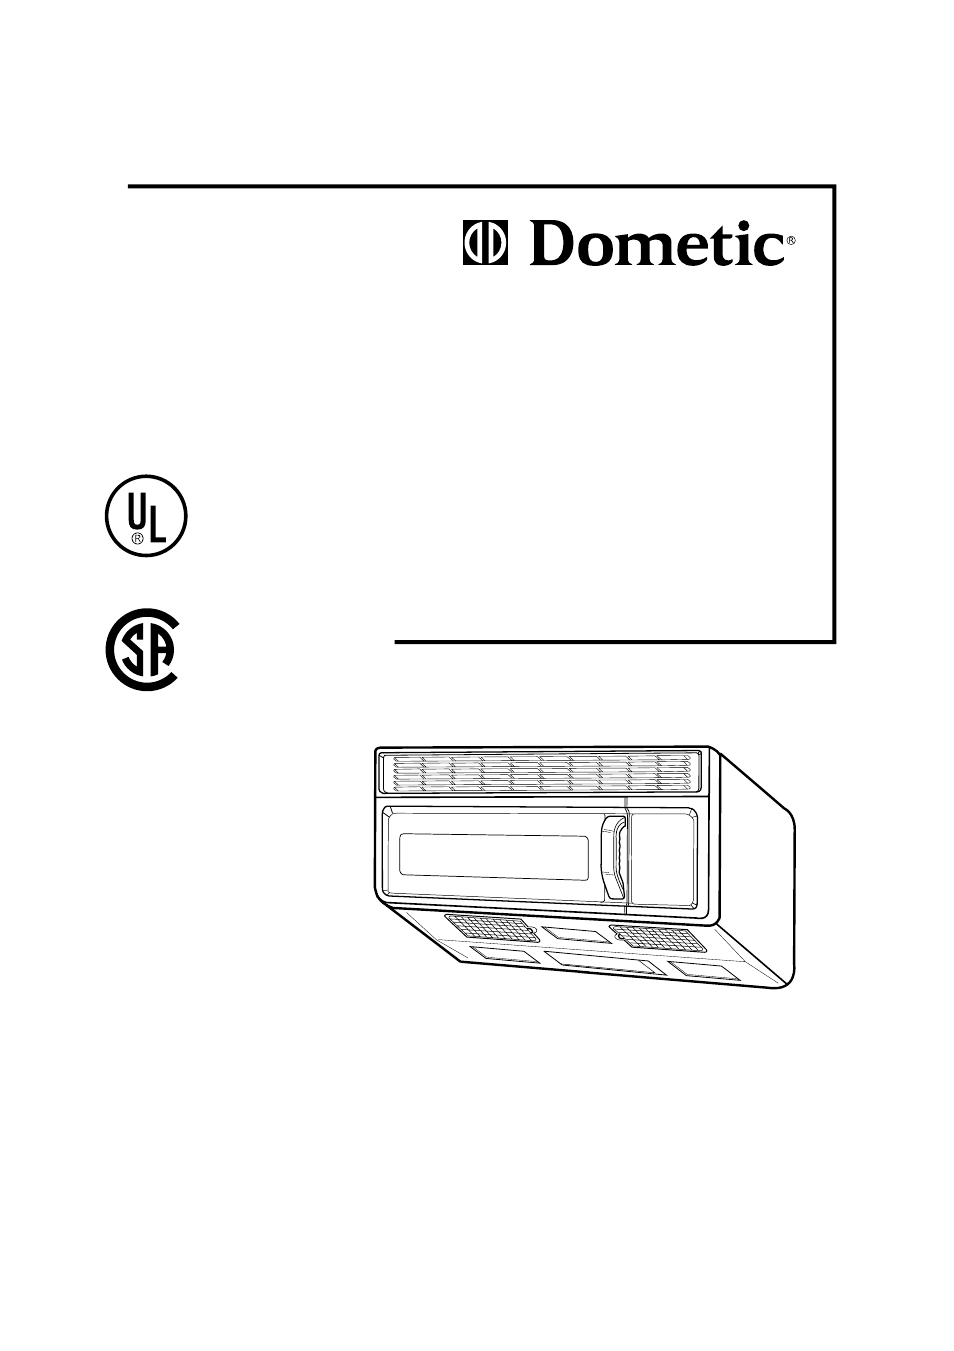 Dometic Dotrc11w User Manual 36 Pages Also For Dotrc11b